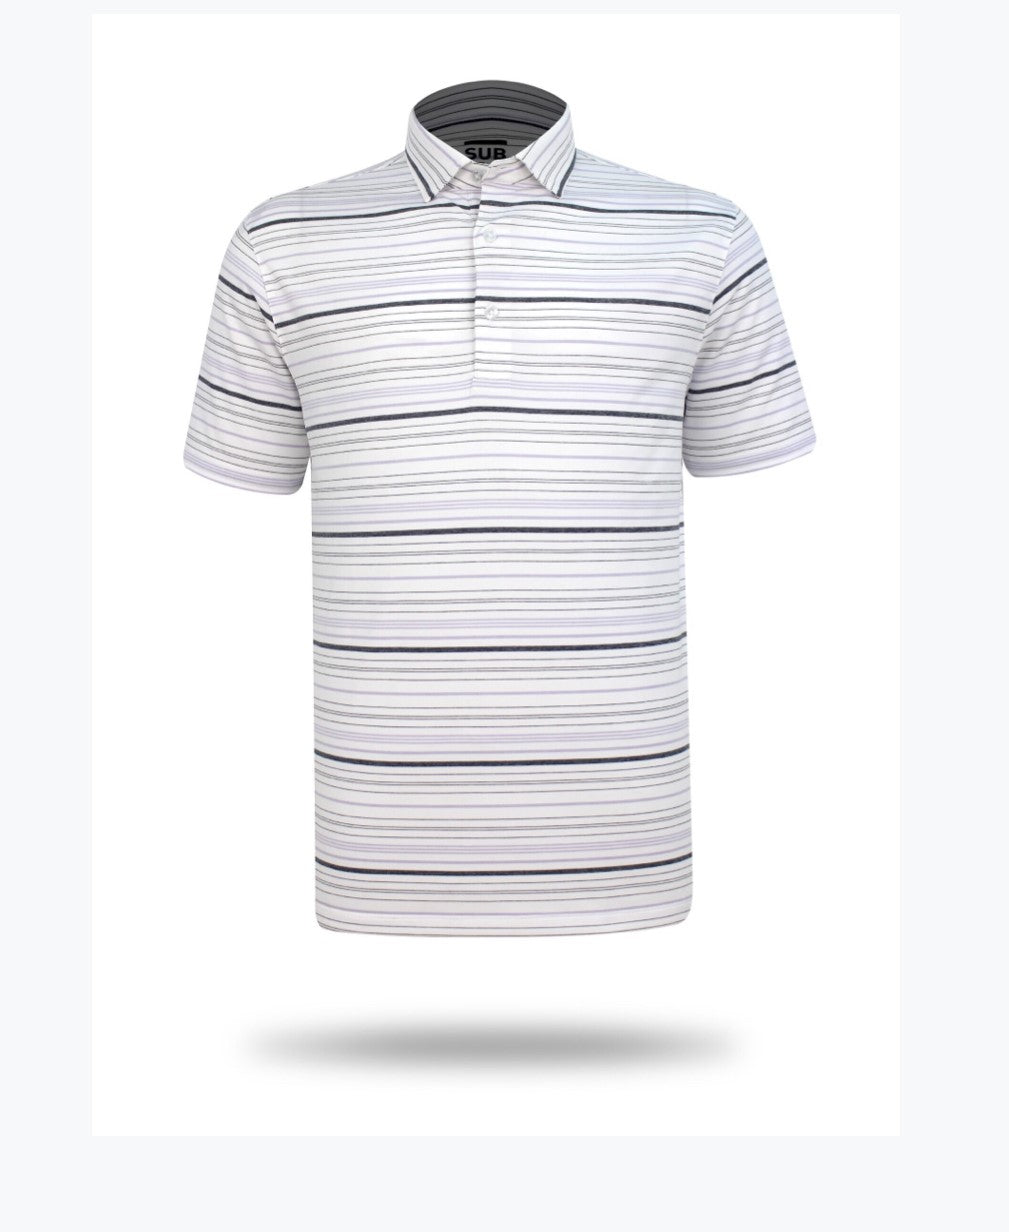 Sub 70 Tour Classic Polo Stripe #14 White/Mauve/Grey